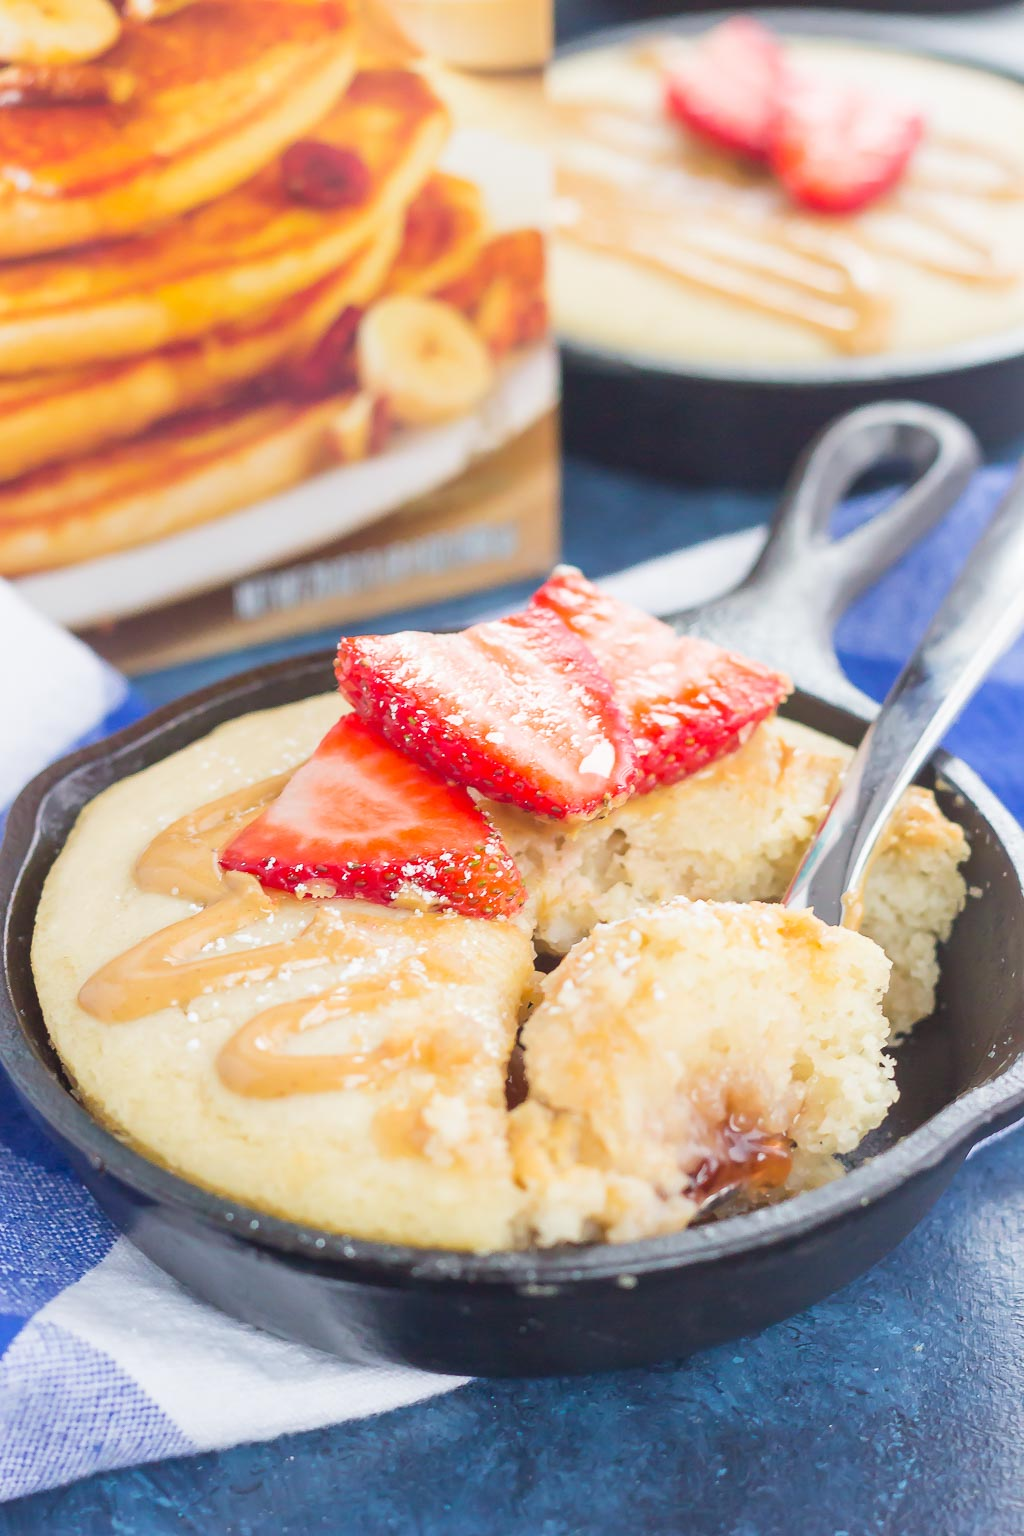 Peanut Butter and Jelly Baked Pancakes are a warm and cozy breakfast to get you going in the mornings. Fluffy, buttermilk pancake batter is swirled with sweet strawberry jelly and then baked in mini cast iron skillets. Drizzled with a sweet peanut butter syrup and topped with fresh strawberries, this easy breakfast is ready in less than 30 minutes and perfect for the whole family!